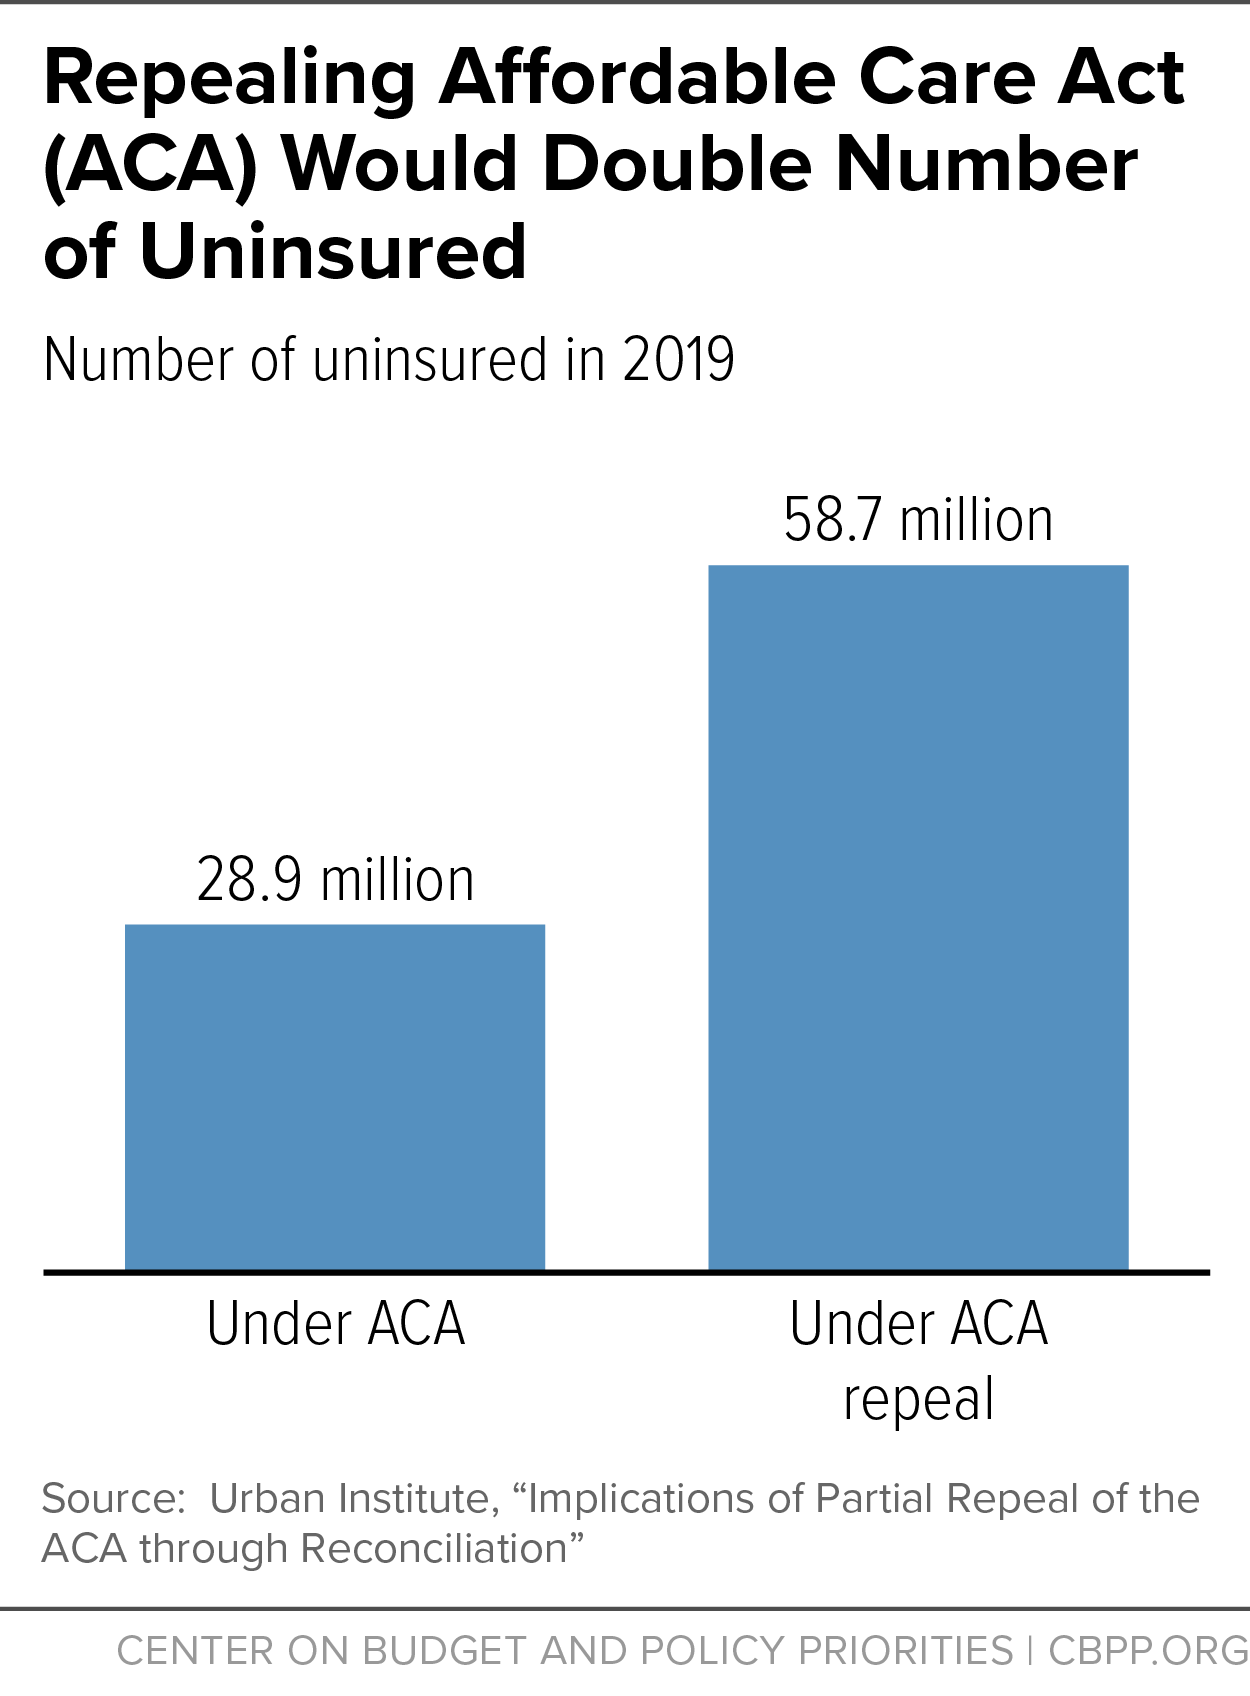 Repealing Affordable Care Act (ACA) Would Double Number of Uninsured